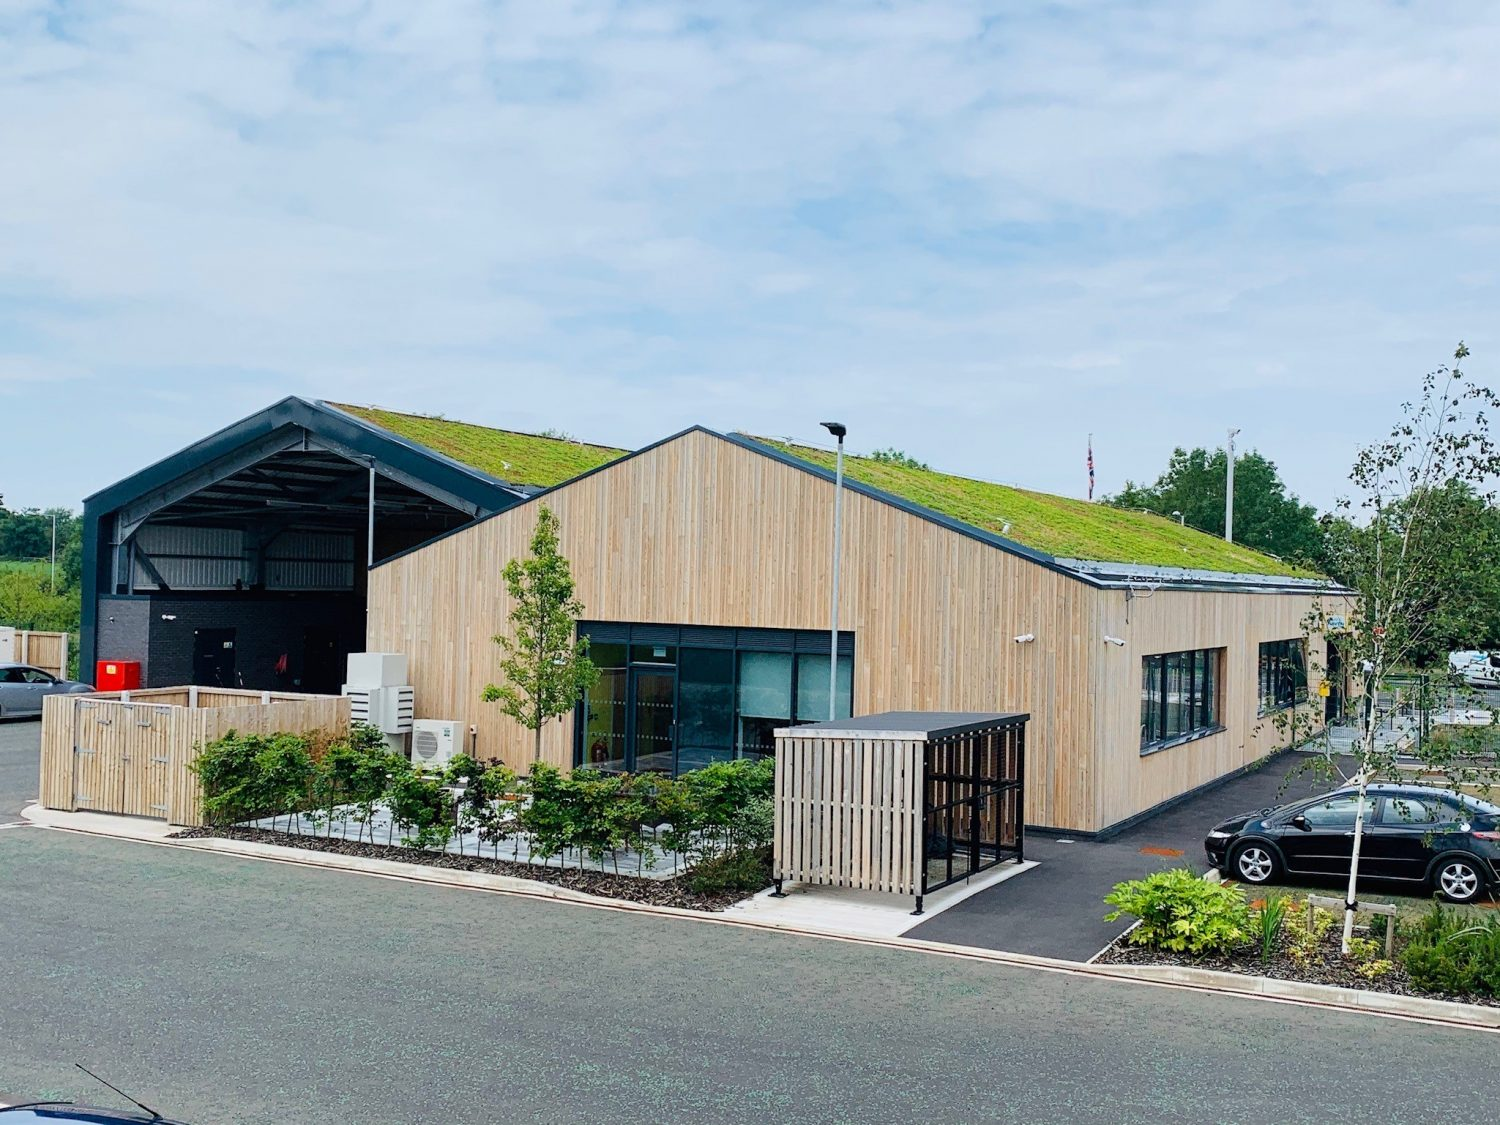 Green Roof, Sedum Pitched Roof, Saughall Massie Fire Station, Wirral, UK